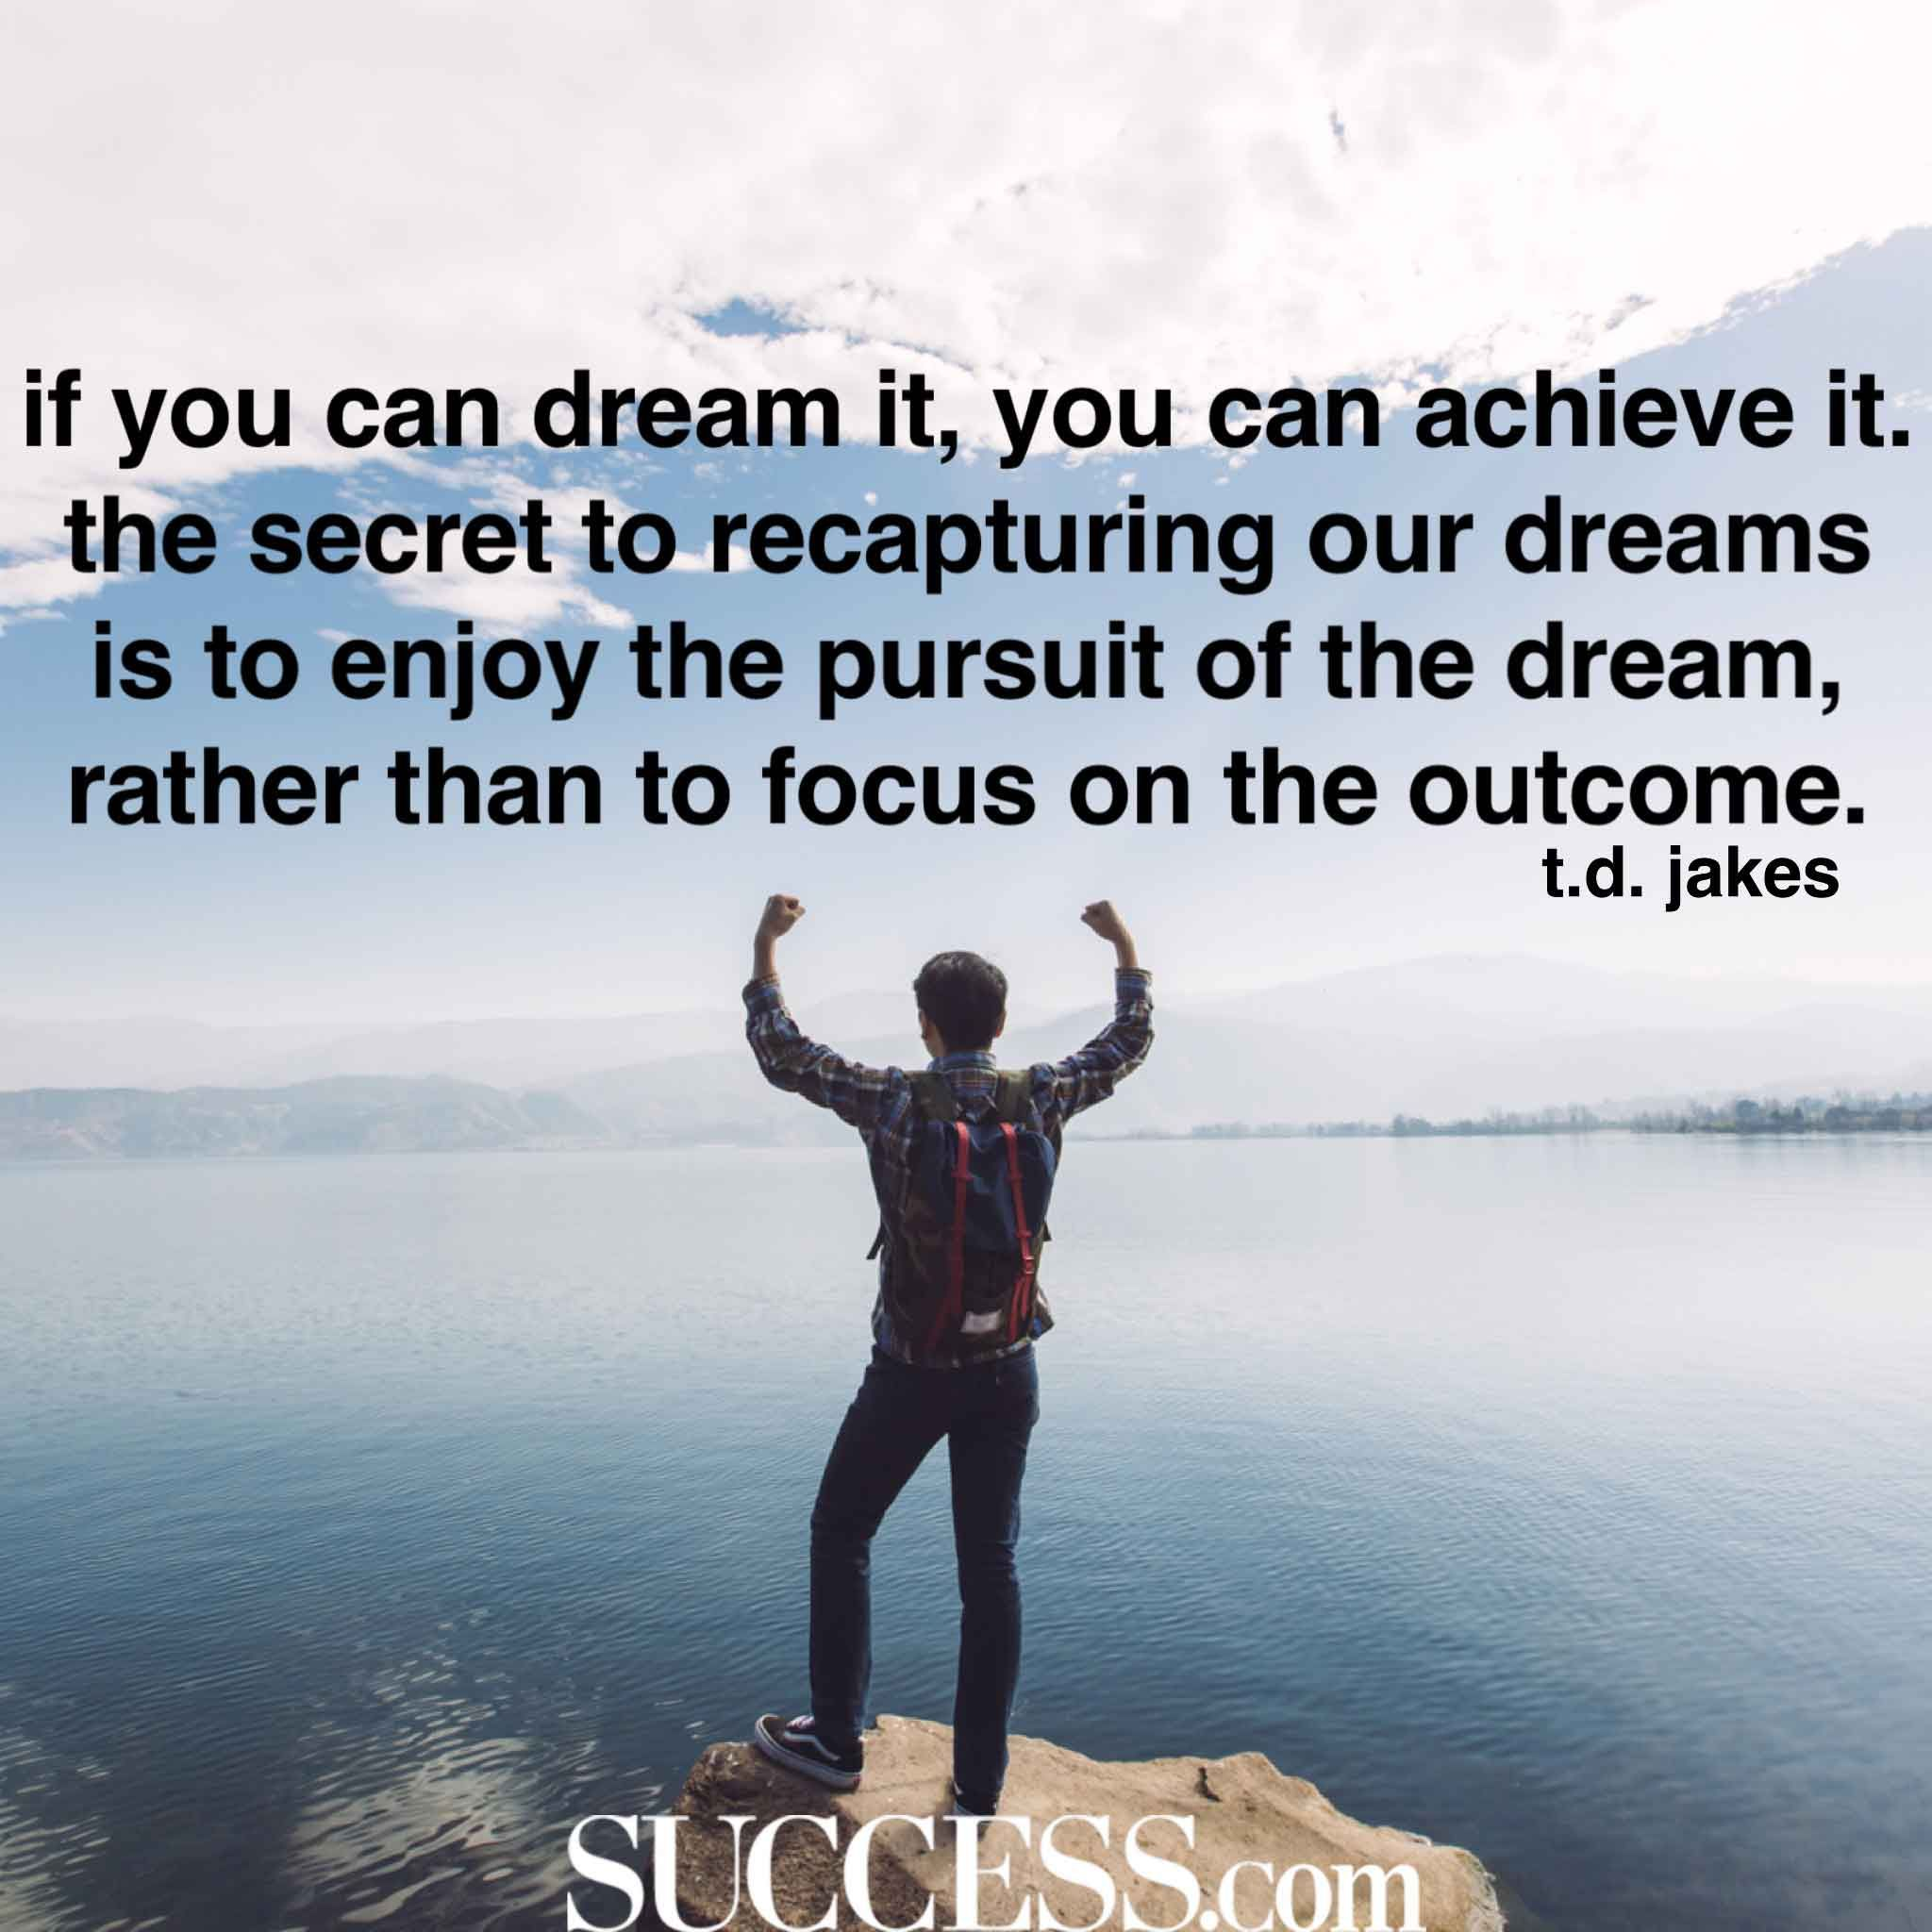 td jakes quotes let it go